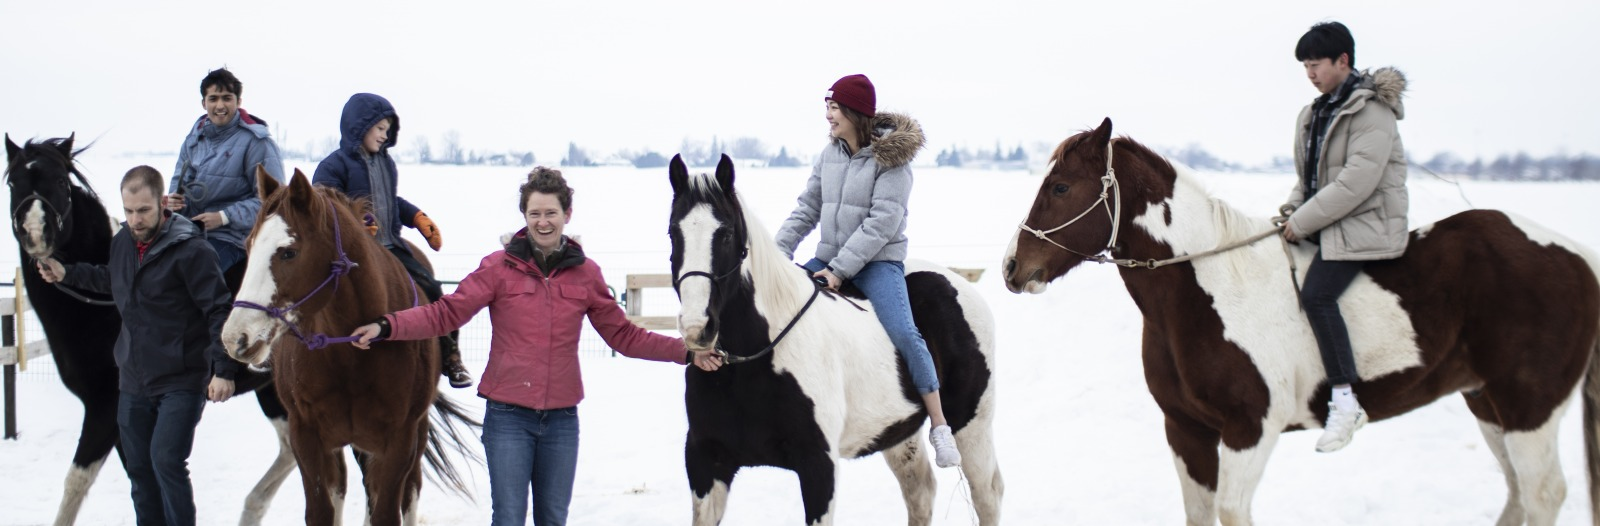 Students riding horses that are lead by adults